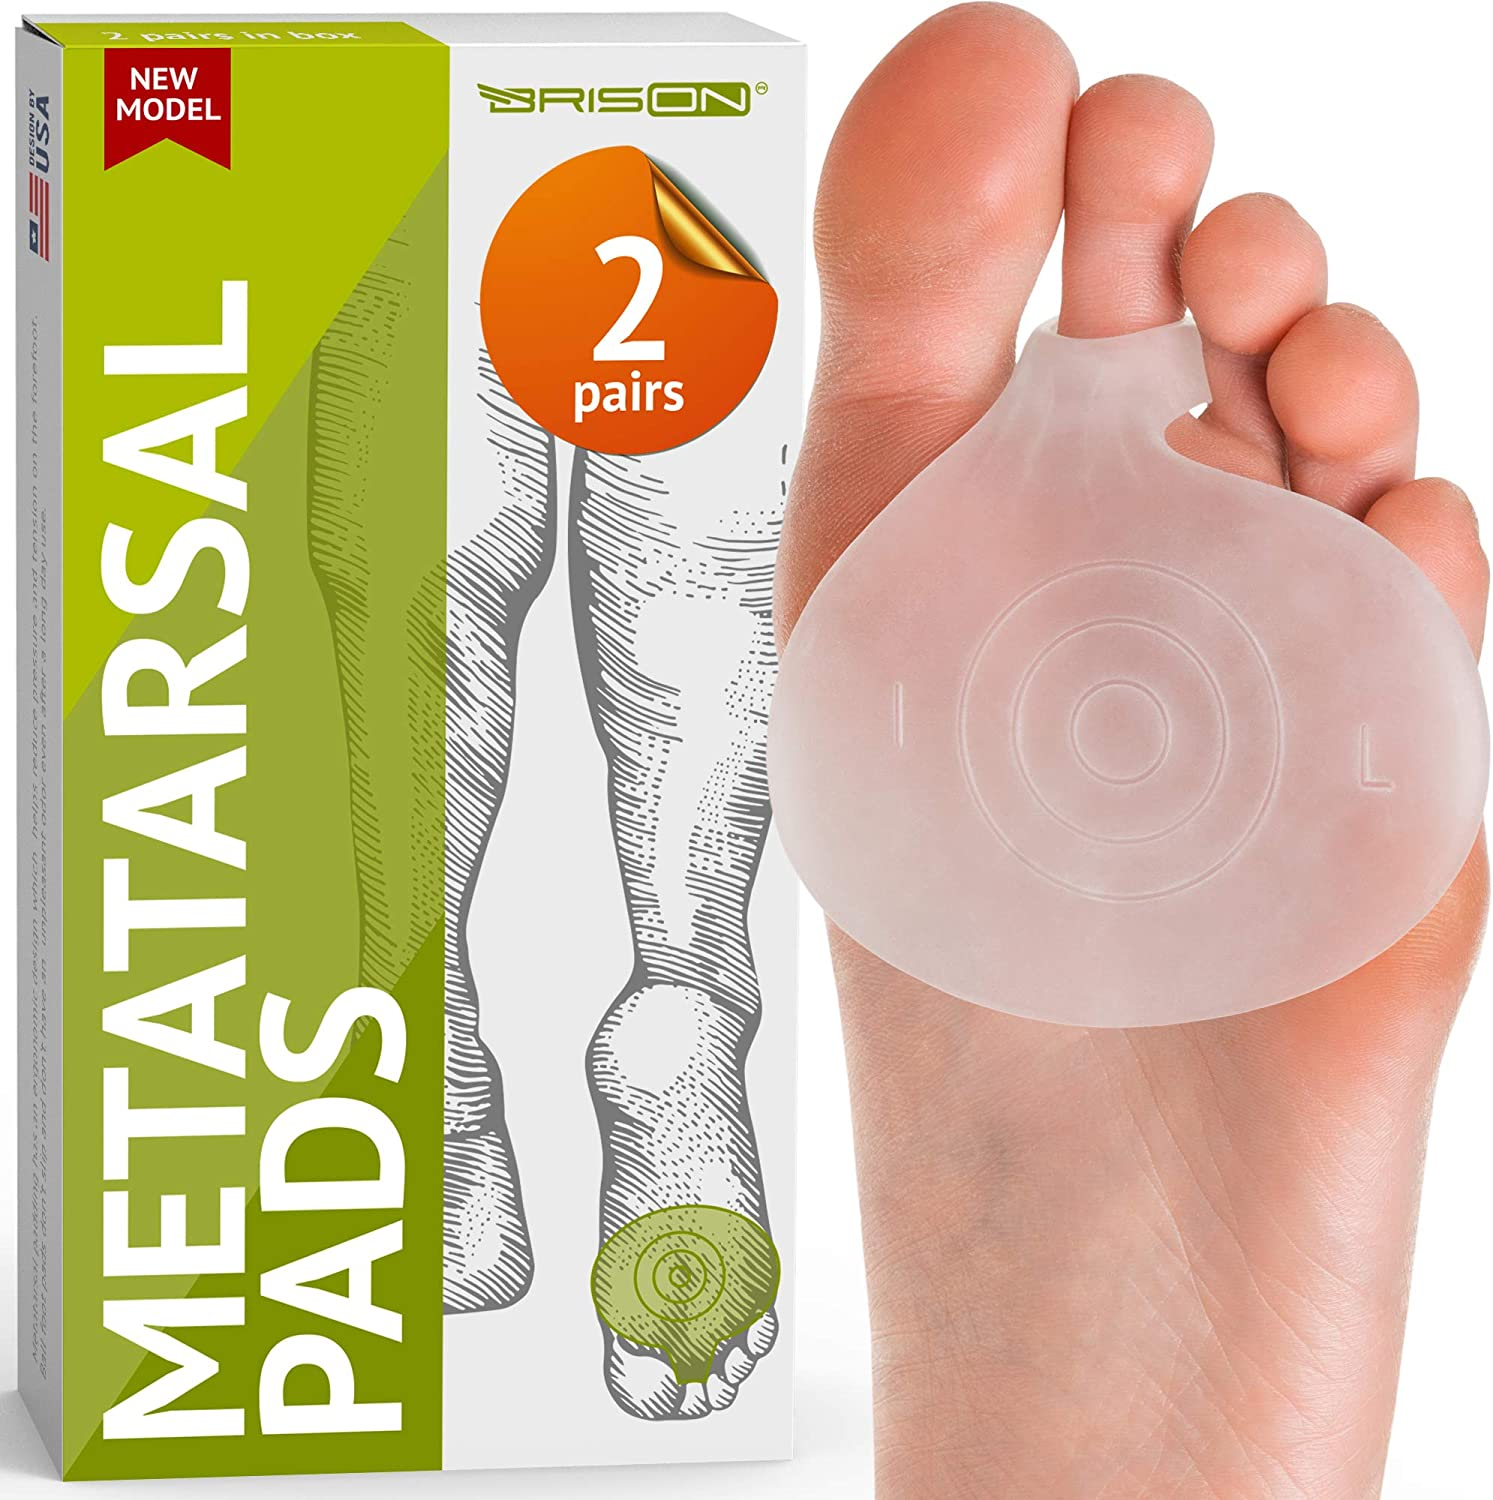 Metatarsal pads ball of foot cushions by BRISON